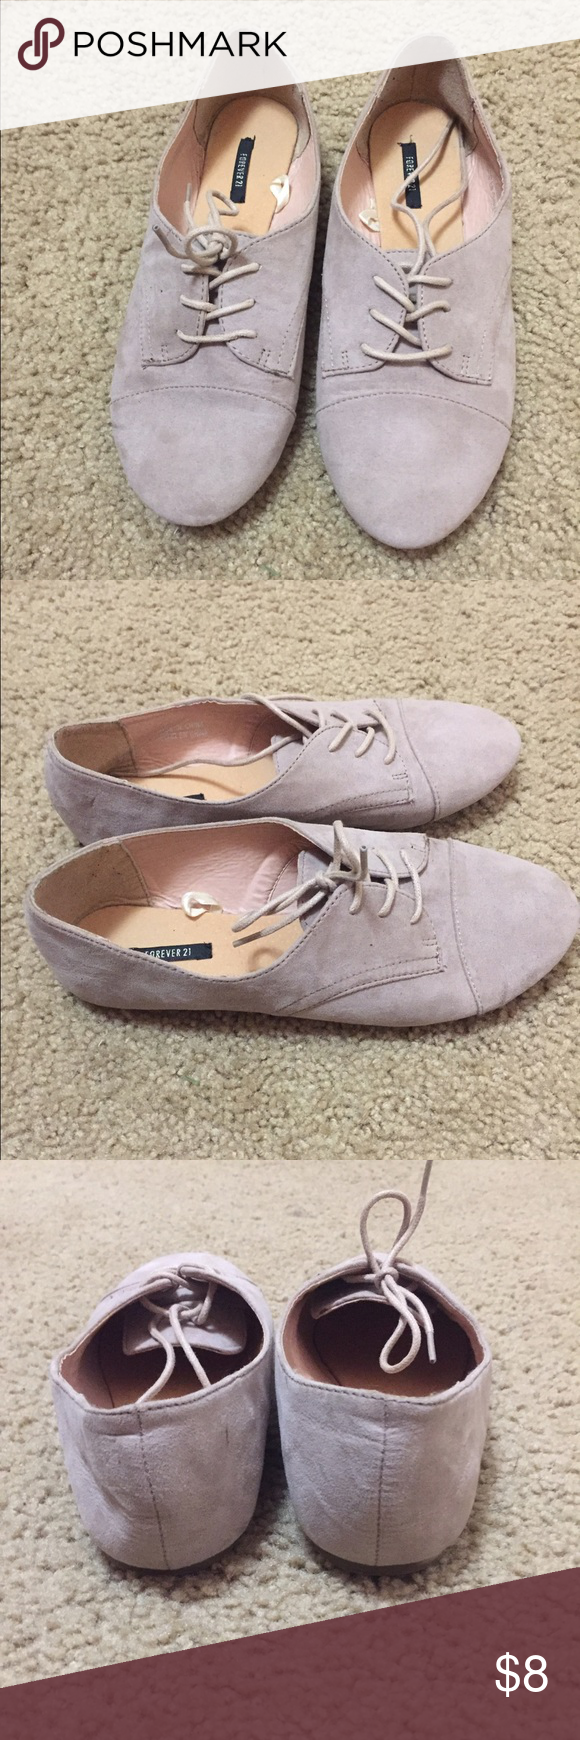 Suede Oxford shoes Forever 21 suede Oxford shoes. Minima wear- size 7.5 Forever 21 Shoes Flats & Loafers